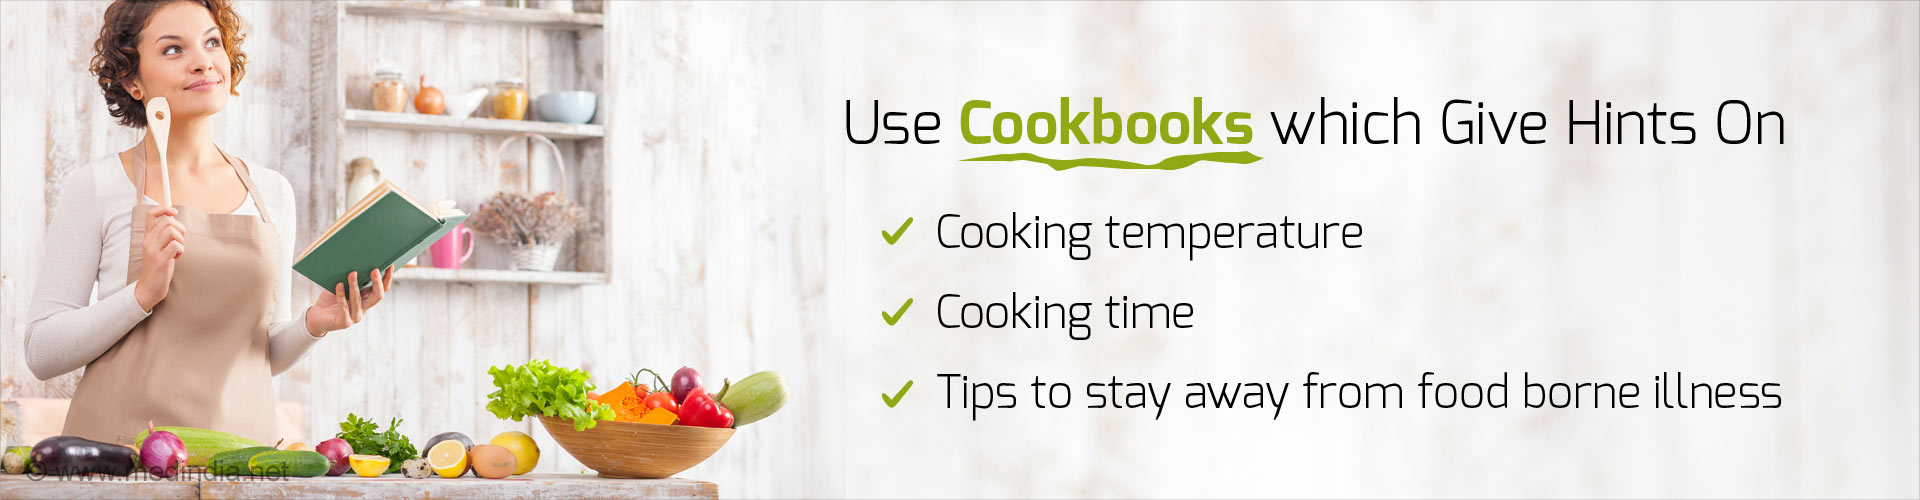 Use cookbooks which give hints on  - Cooking temperature - Cooking time - Tips to stay away from food borne illness